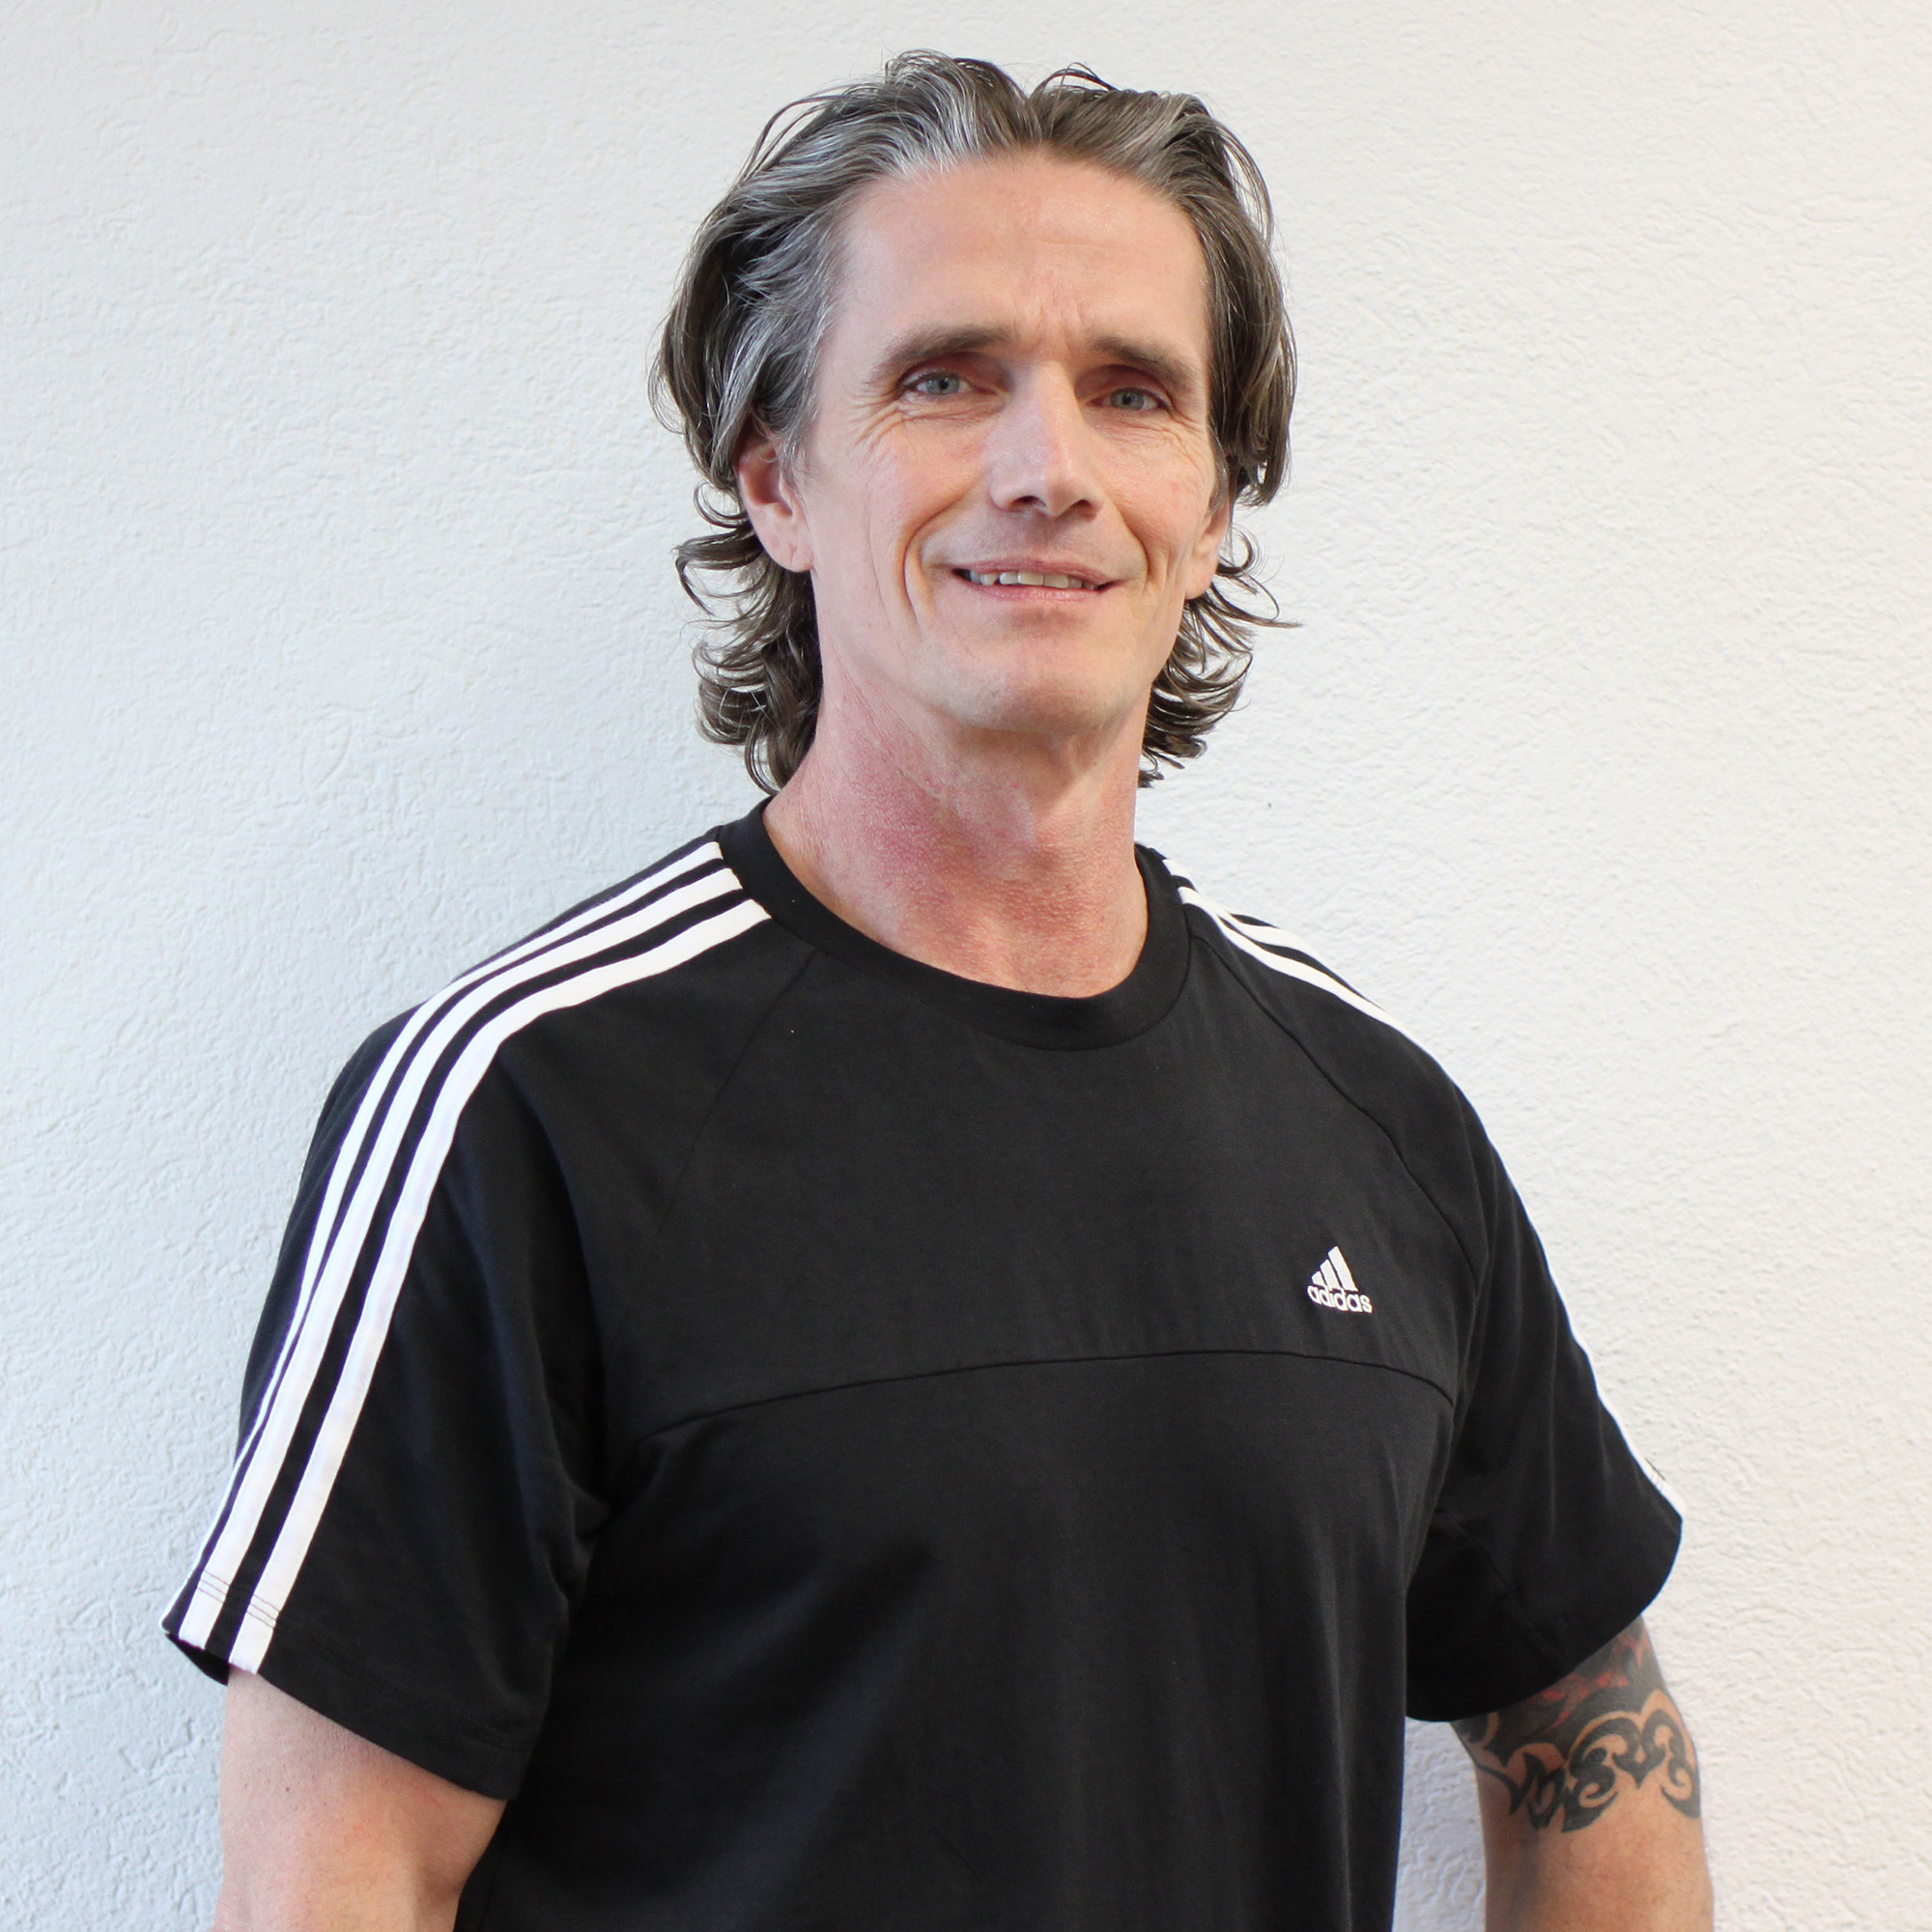 Ronald Jansen Head Coach Personaltrainer